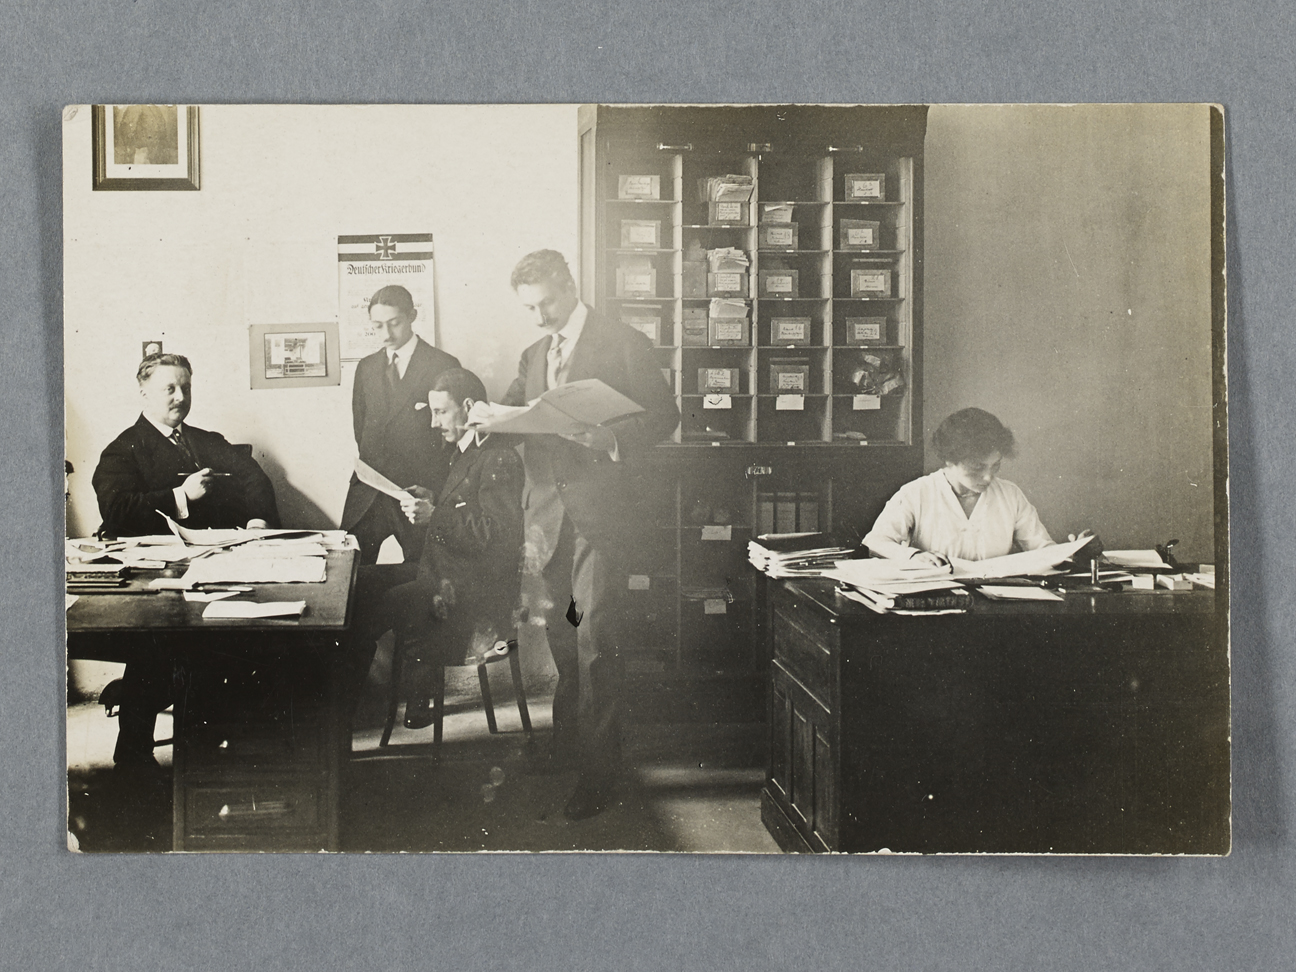 Black and white image showing Eva Ehrenberg working on a desk and three male colleagues on the opposite side of the office